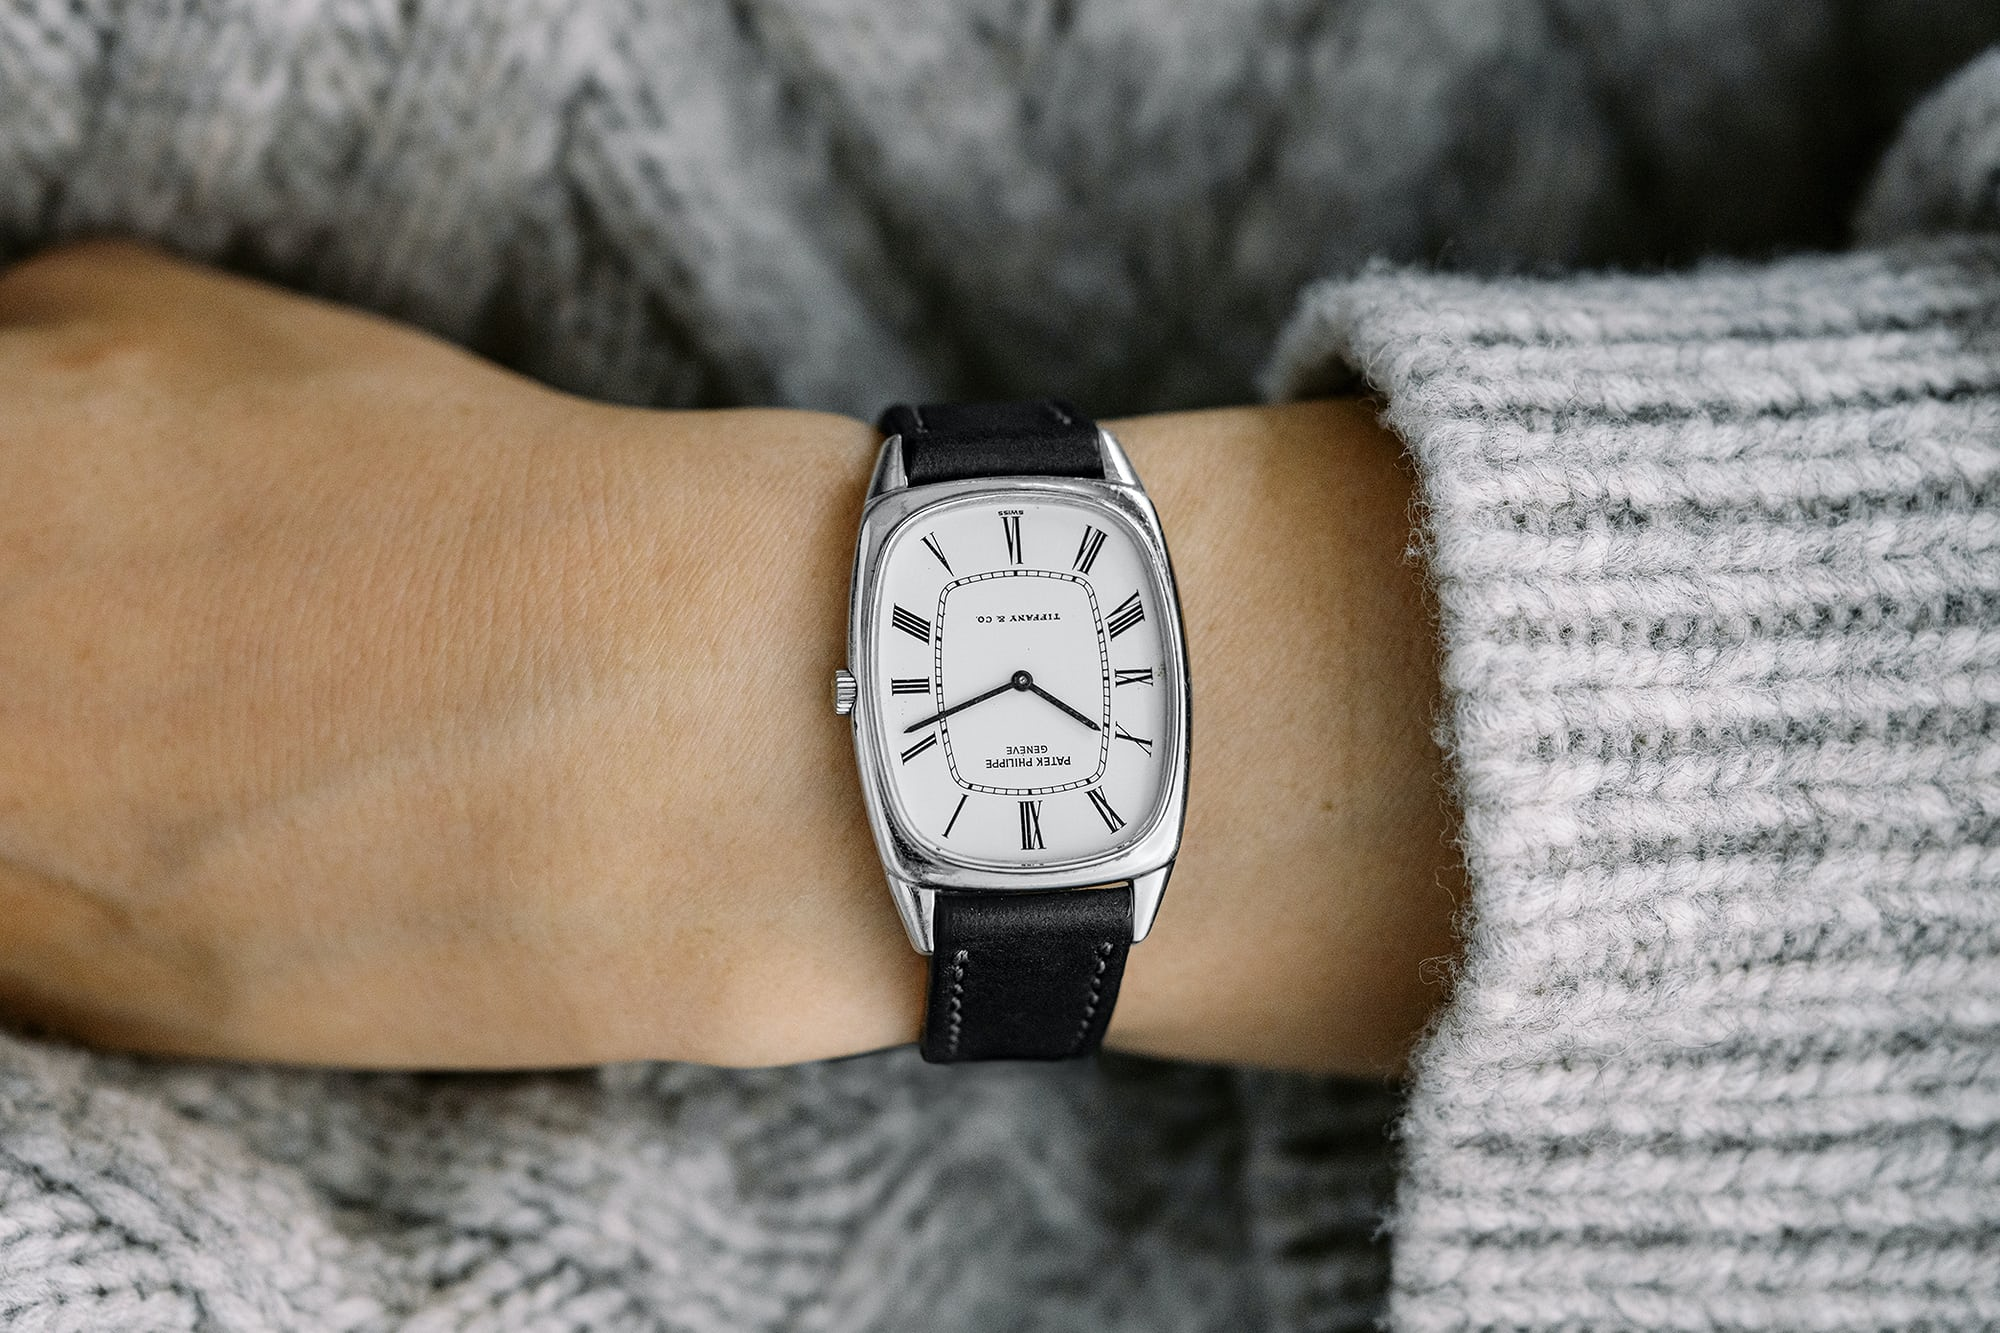 """<p><a href=""""https://shop.hodinkee.com/products/19xx-patek-philippe-tiffany-white-gold-ref-3667-3567-with-buckle"""" rel=""""noopener"""" target=""""_blank""""><u>1981 Patek Philippe Ref. 3667 In 18K White Gold Retailed By Tiffany &amp; Co.</u></a></p>"""